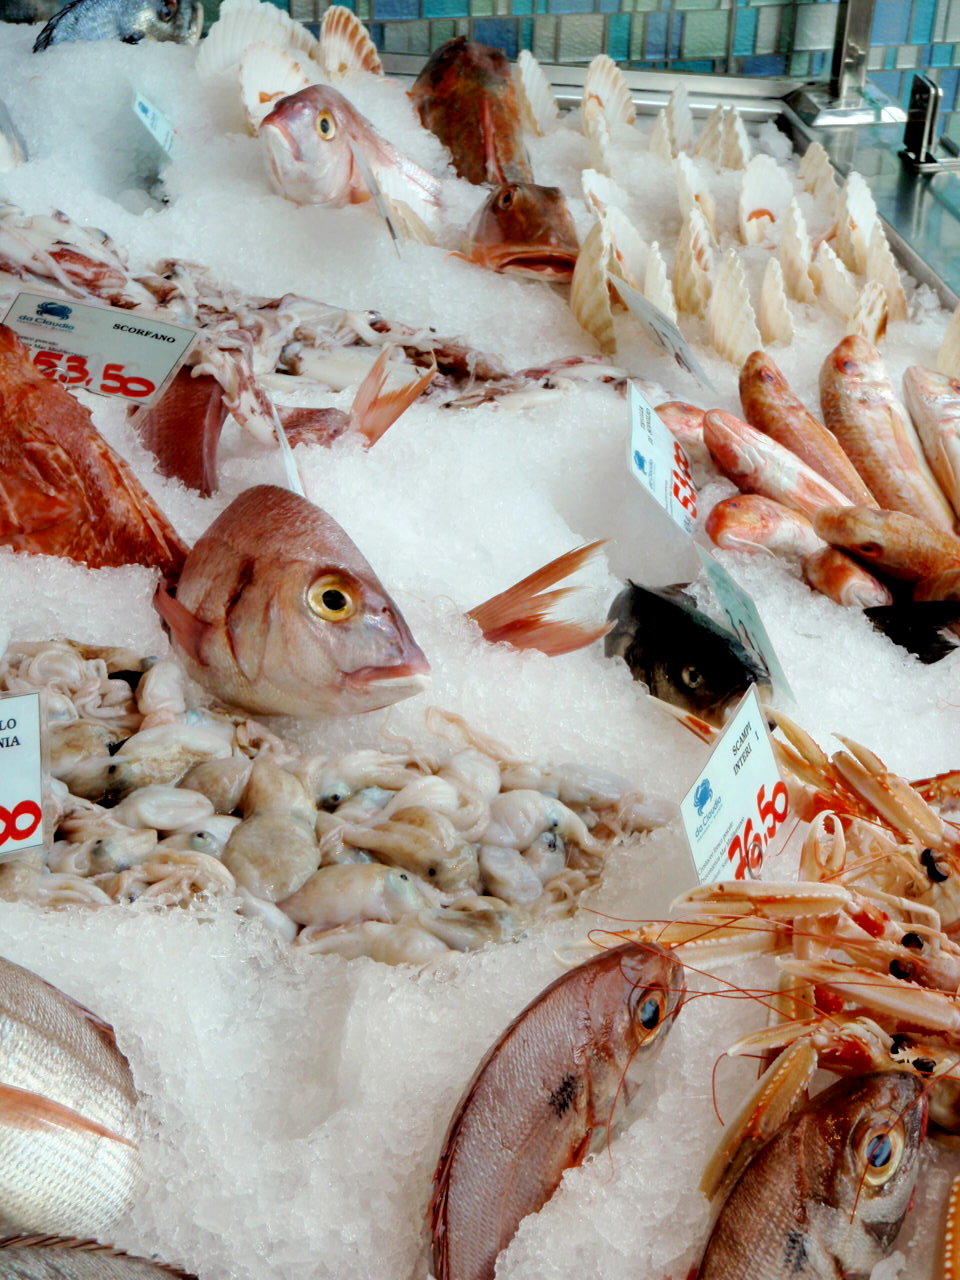 display of fresh seafood